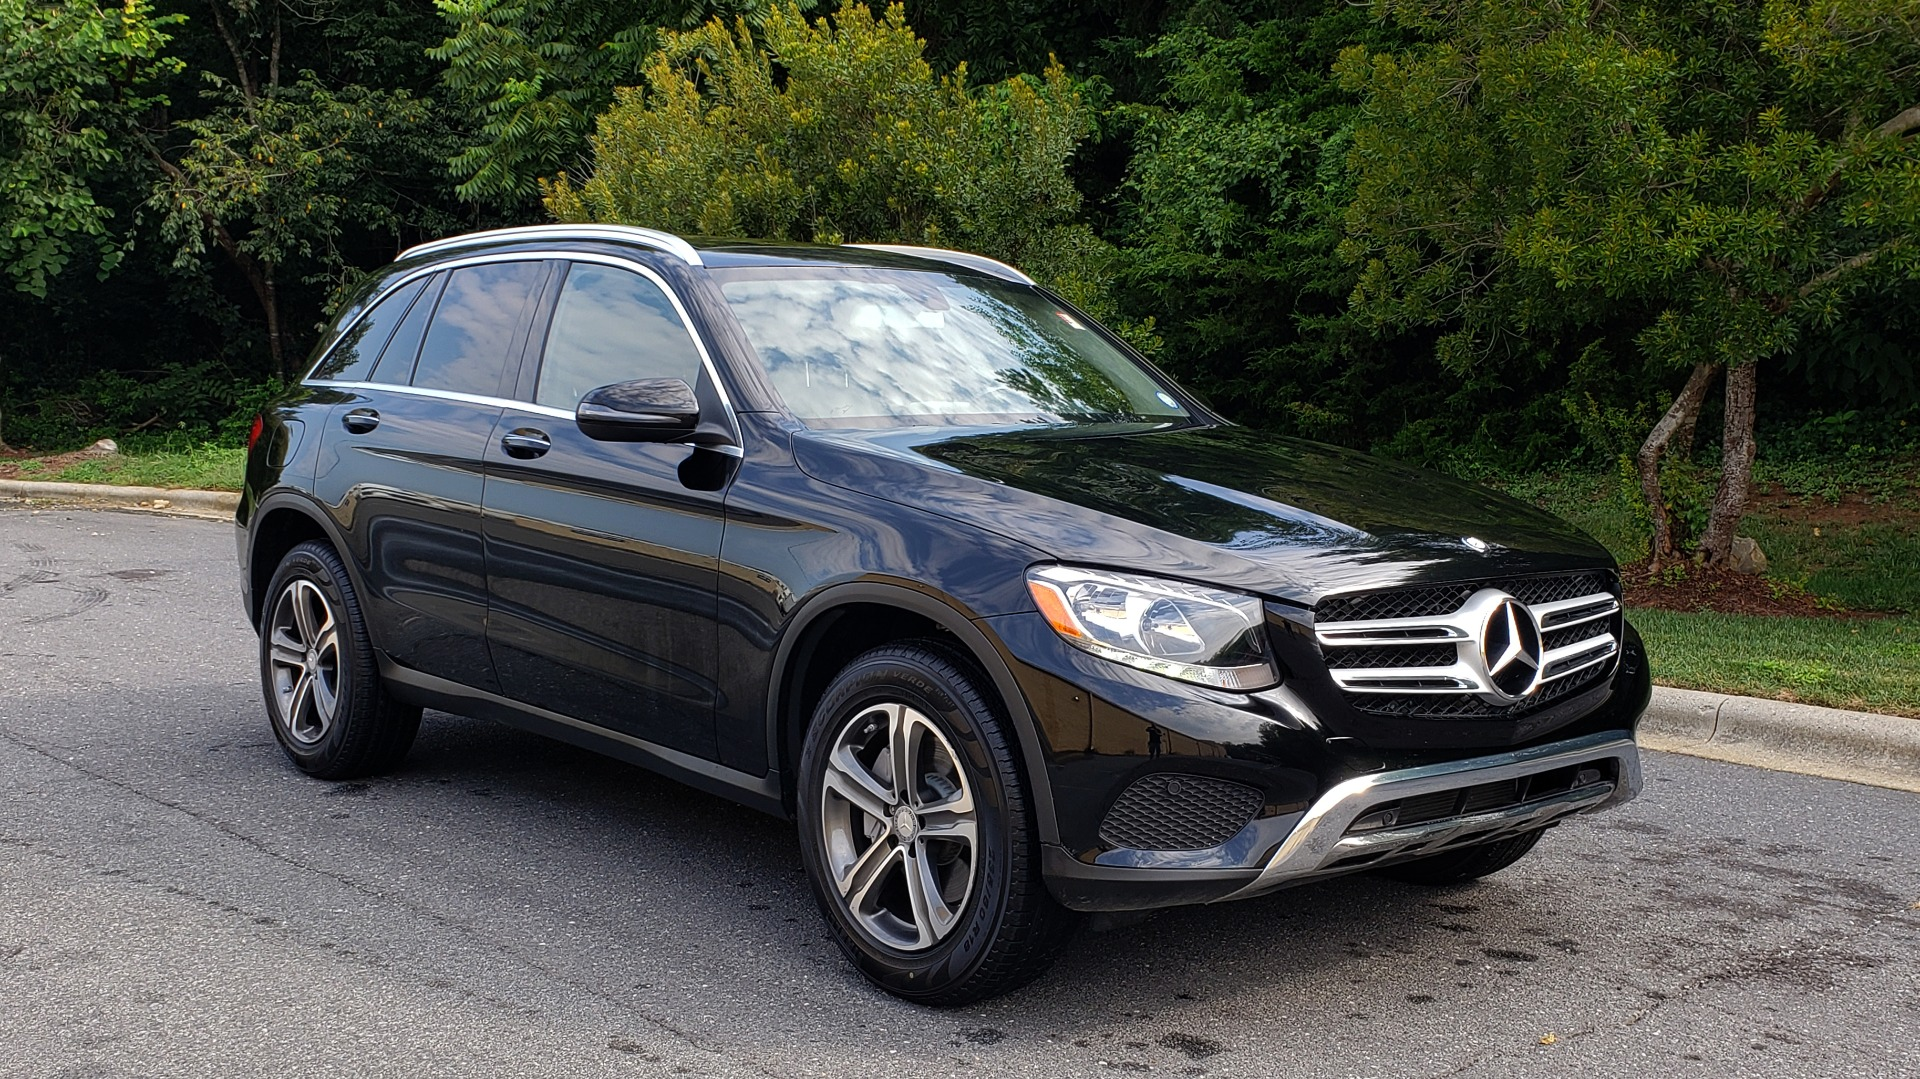 Used 2016 Mercedes-Benz GLC 300 / PANO-ROOF / HEATED SEATS / REARVIEW / NEW TIRES for sale Sold at Formula Imports in Charlotte NC 28227 4